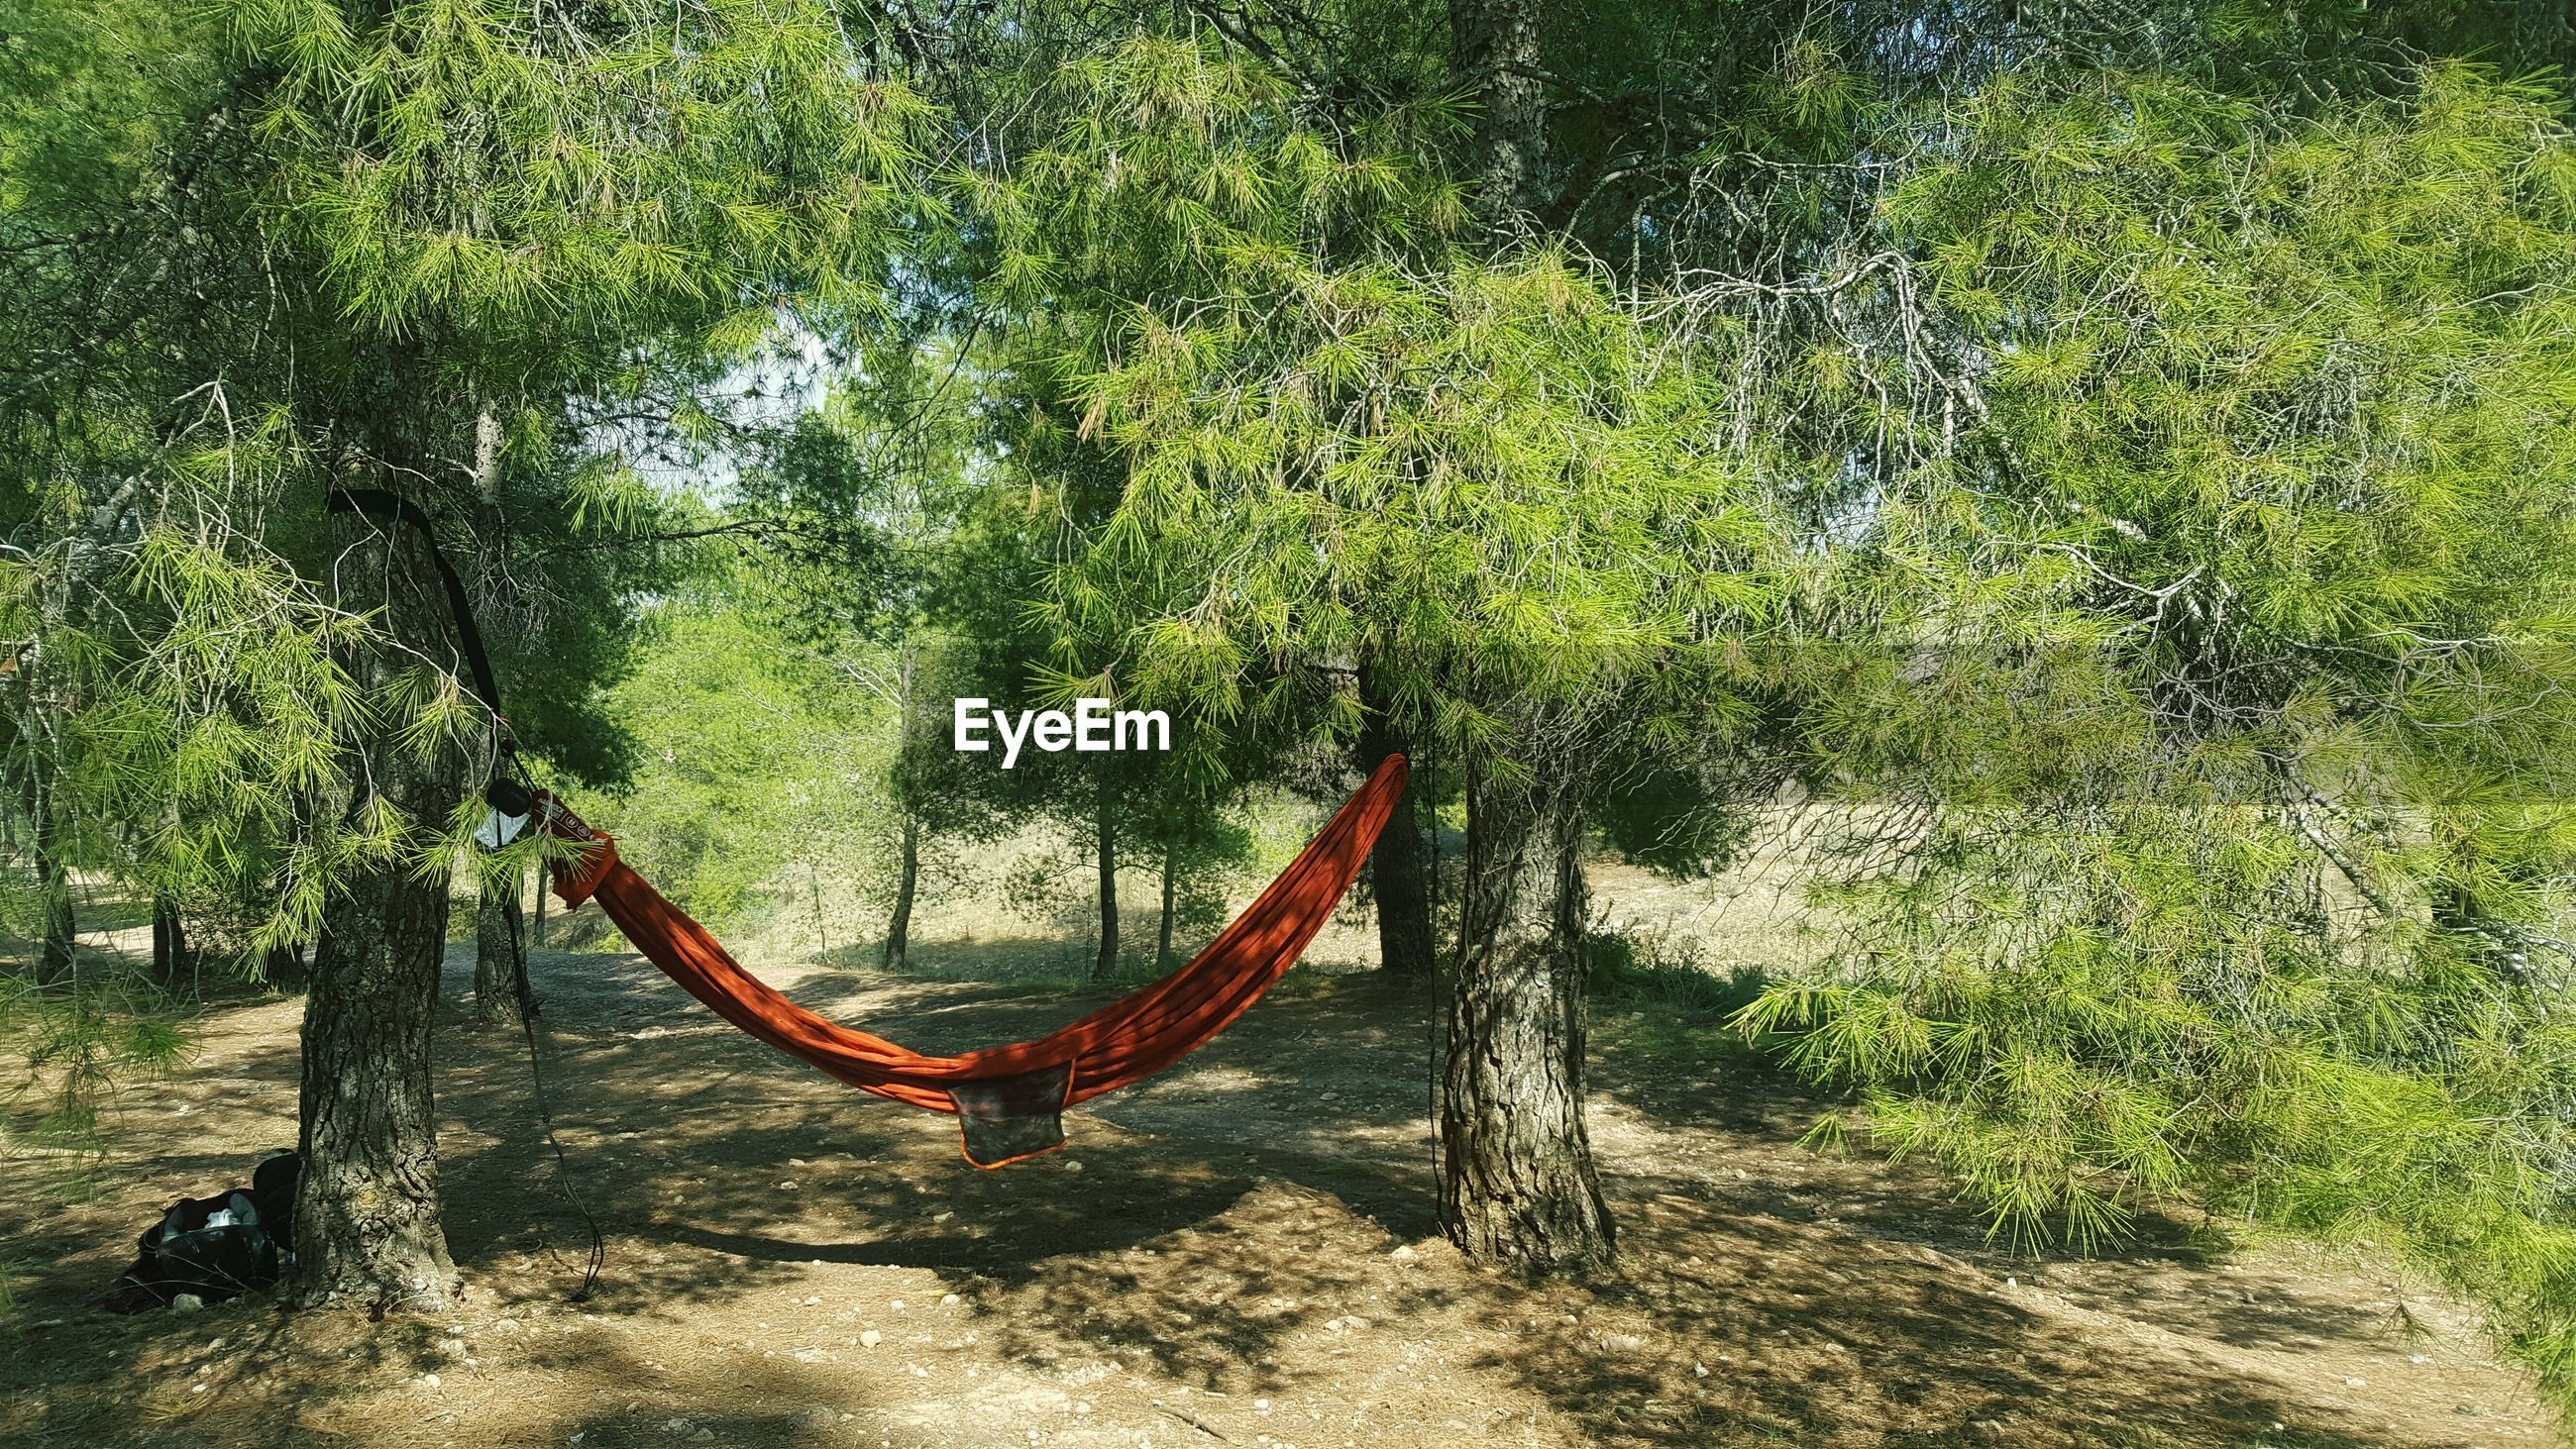 tree, hanging, sand, day, green color, growth, nature, outdoors, no people, beauty in nature